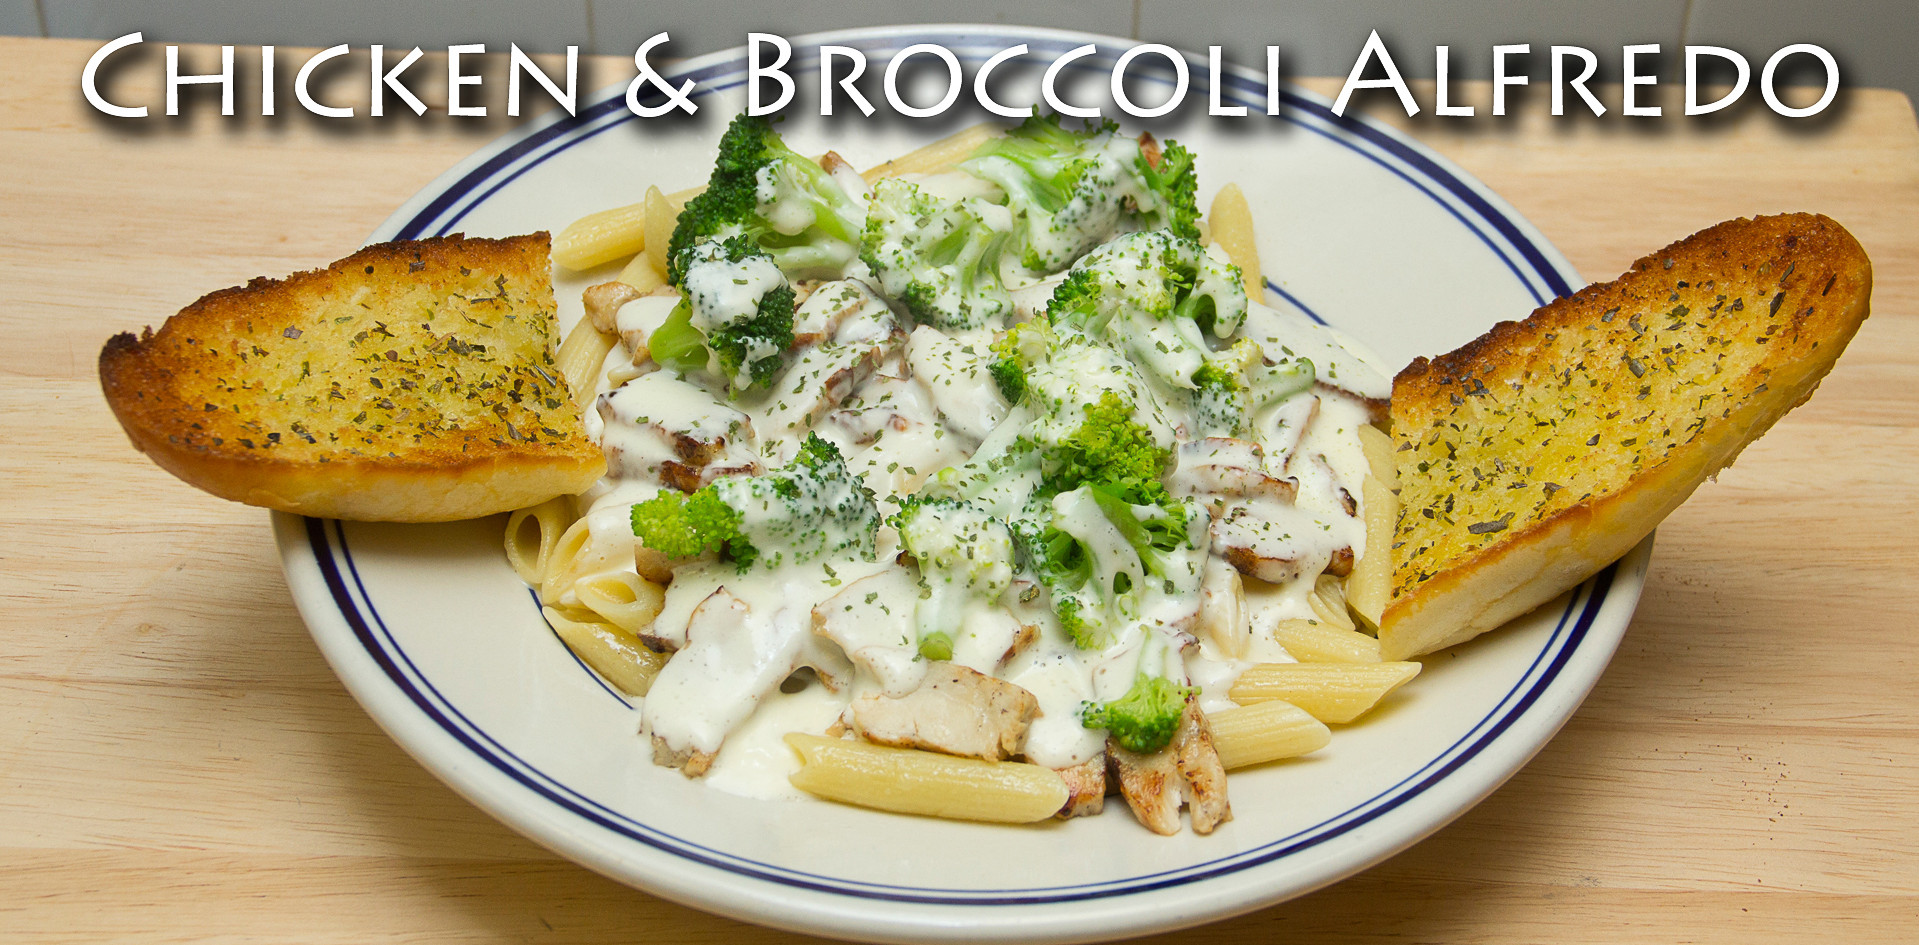 Chicken & Broccoli Alfredo Pasta